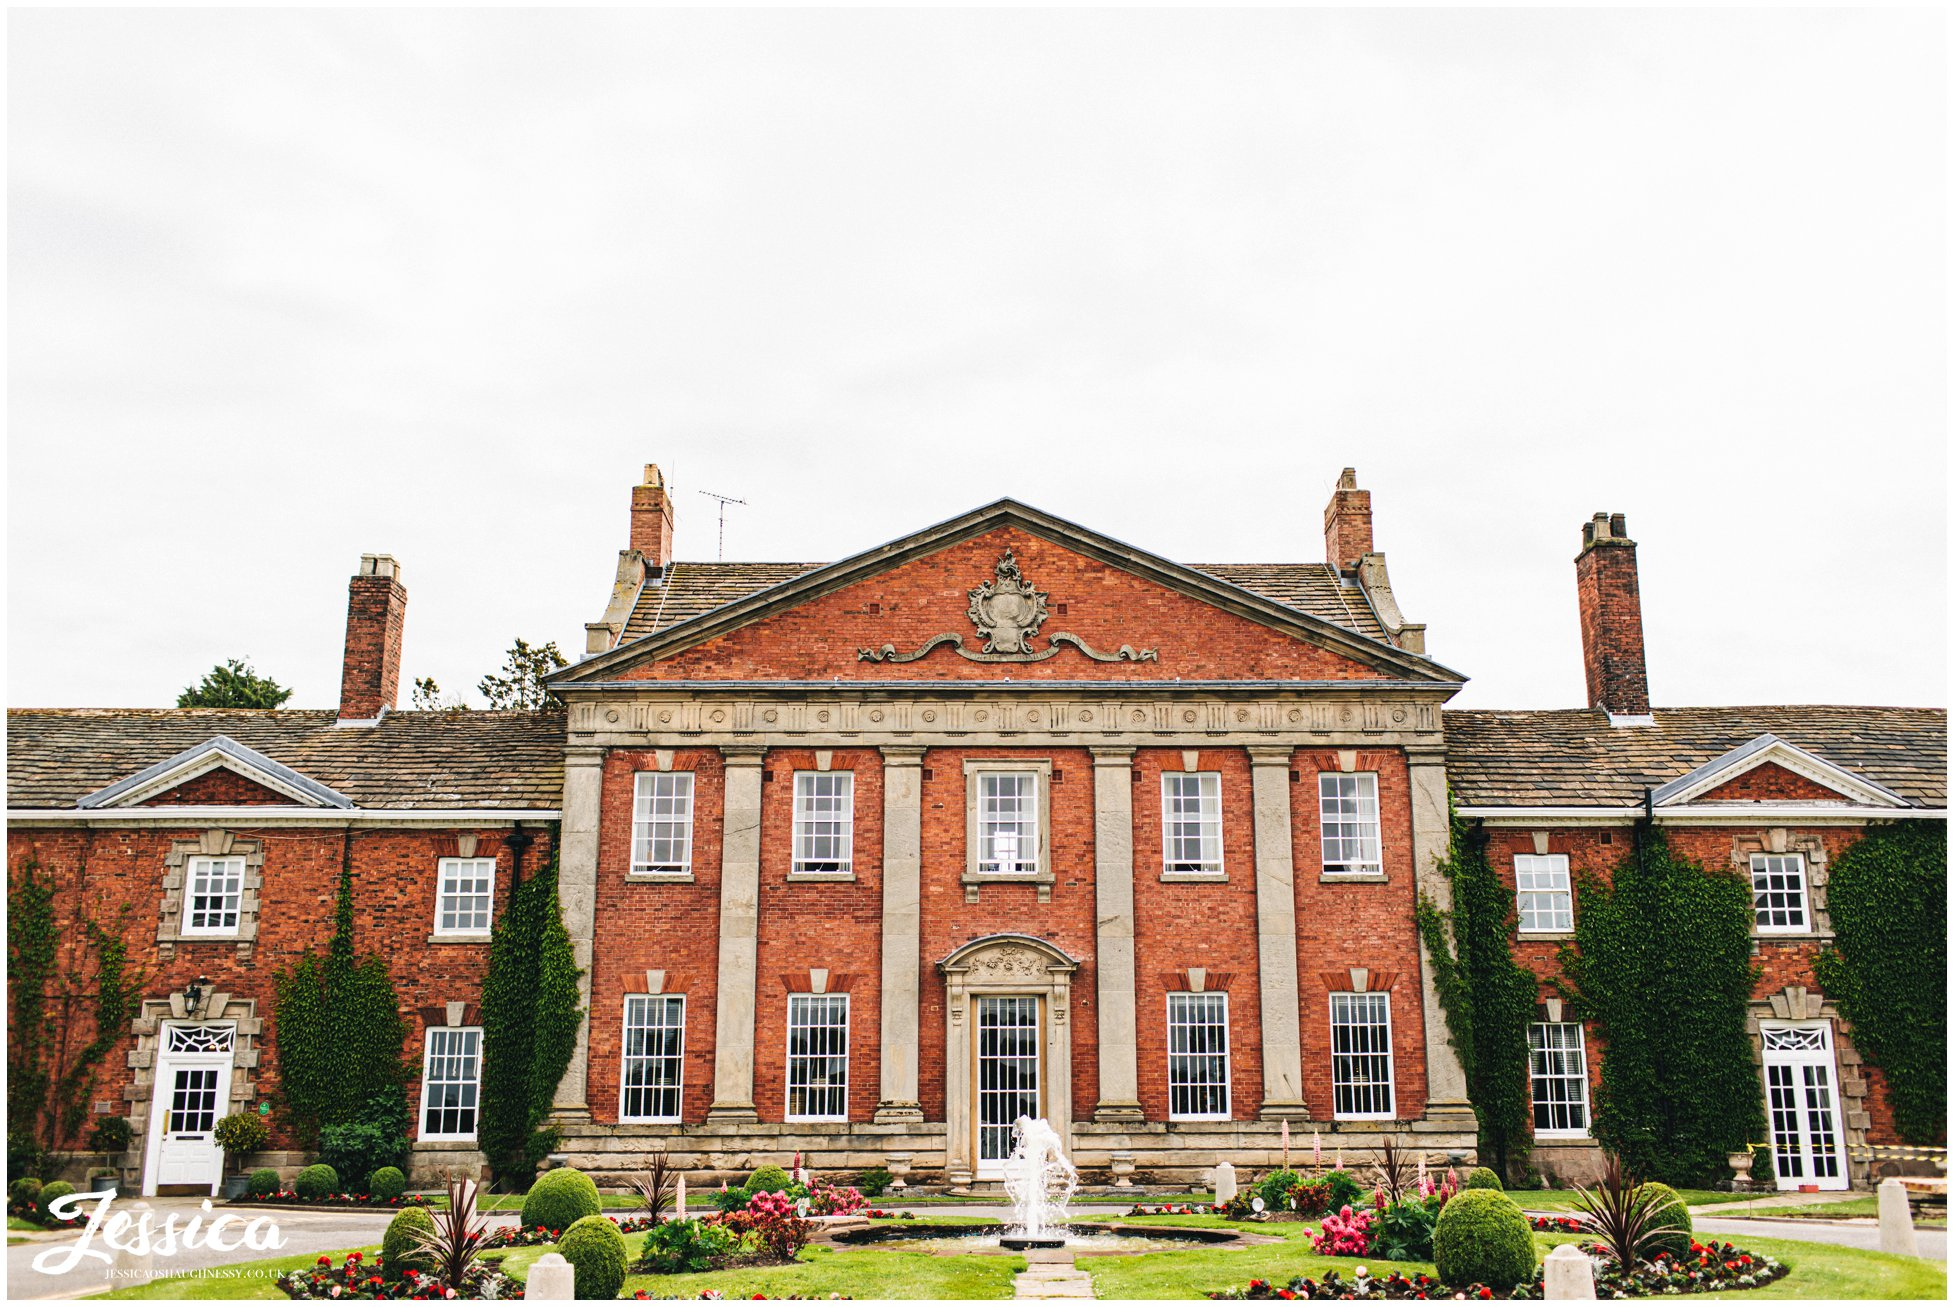 Mottram Hall wedding venue in cheshire